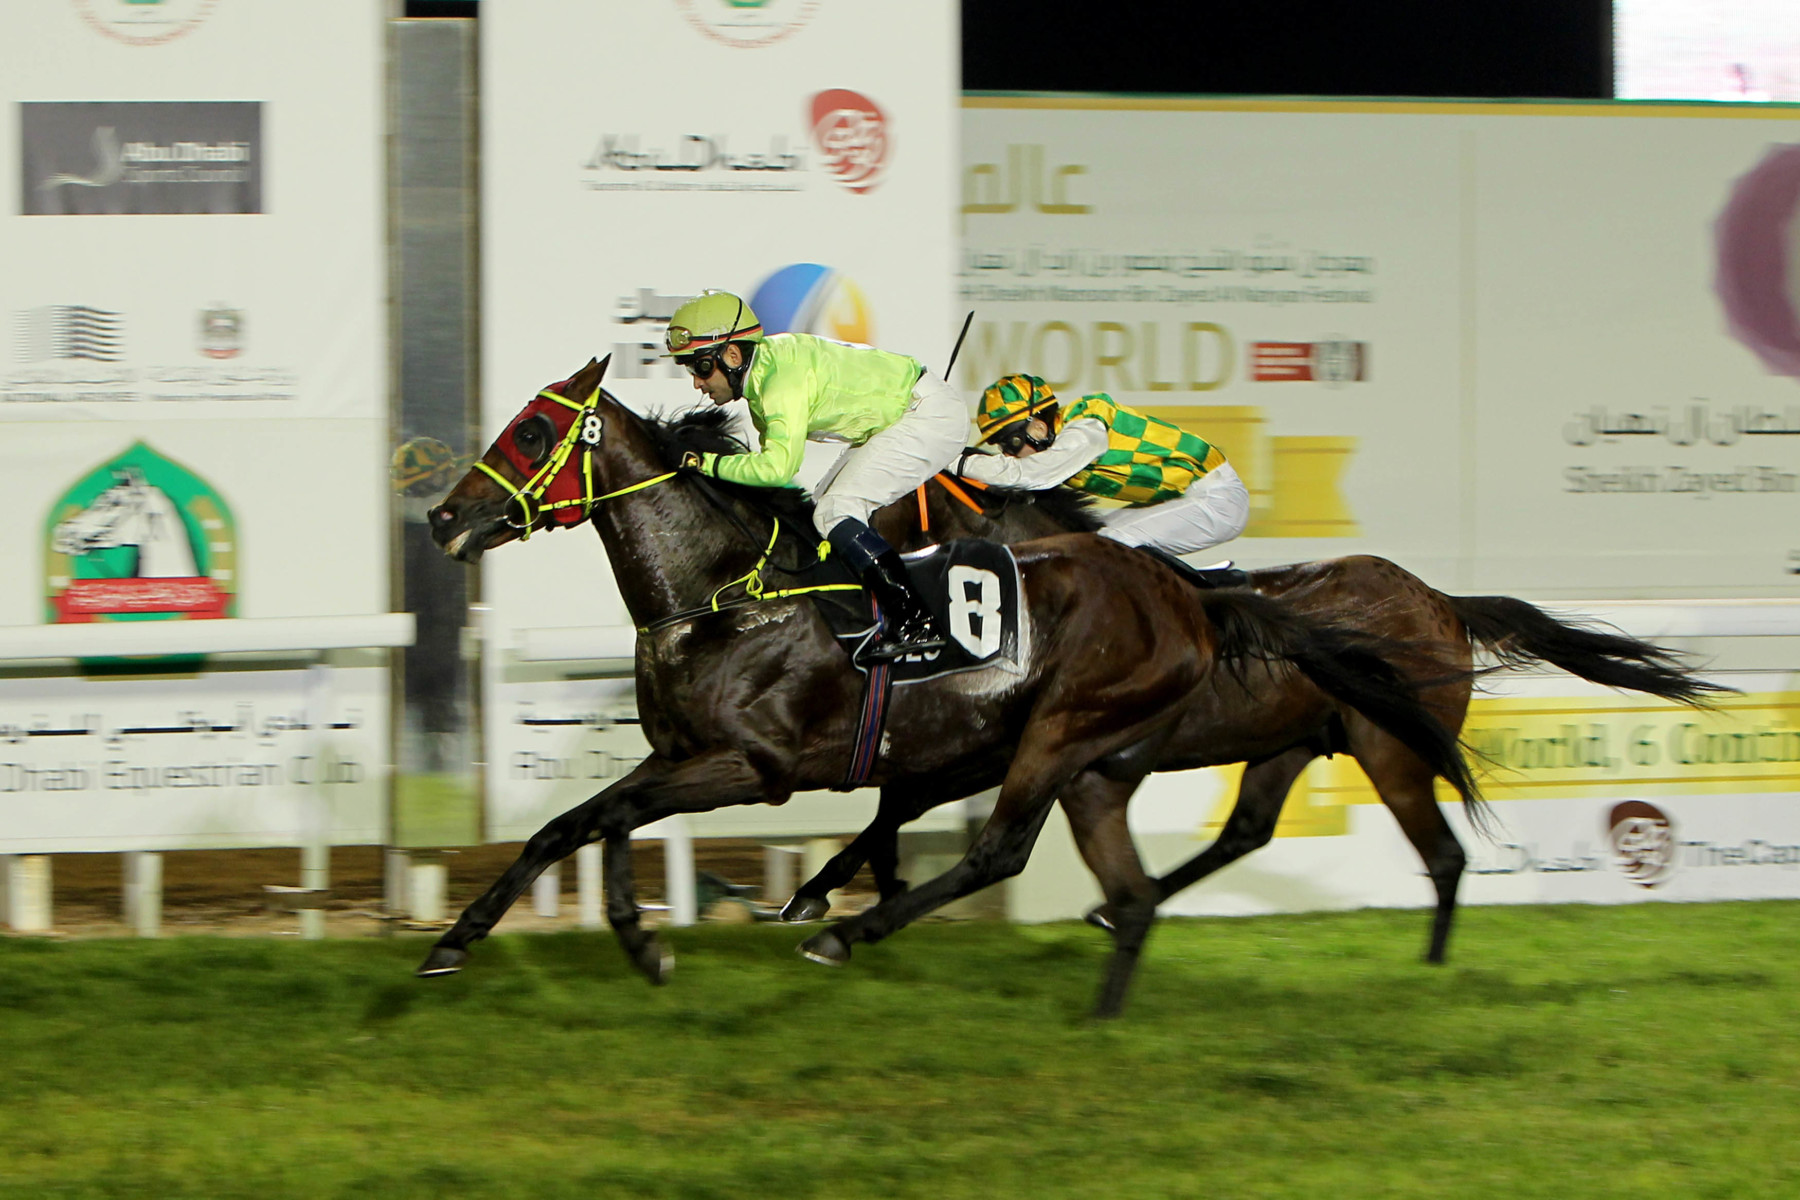 CHEIKH ZAYED BIN SULTAN AL NAHYAN CUP (EX-NATIONAL DAY CUP) (GR3 PA) - Sharaf Al Reef surprend et remporte son premier Groupe